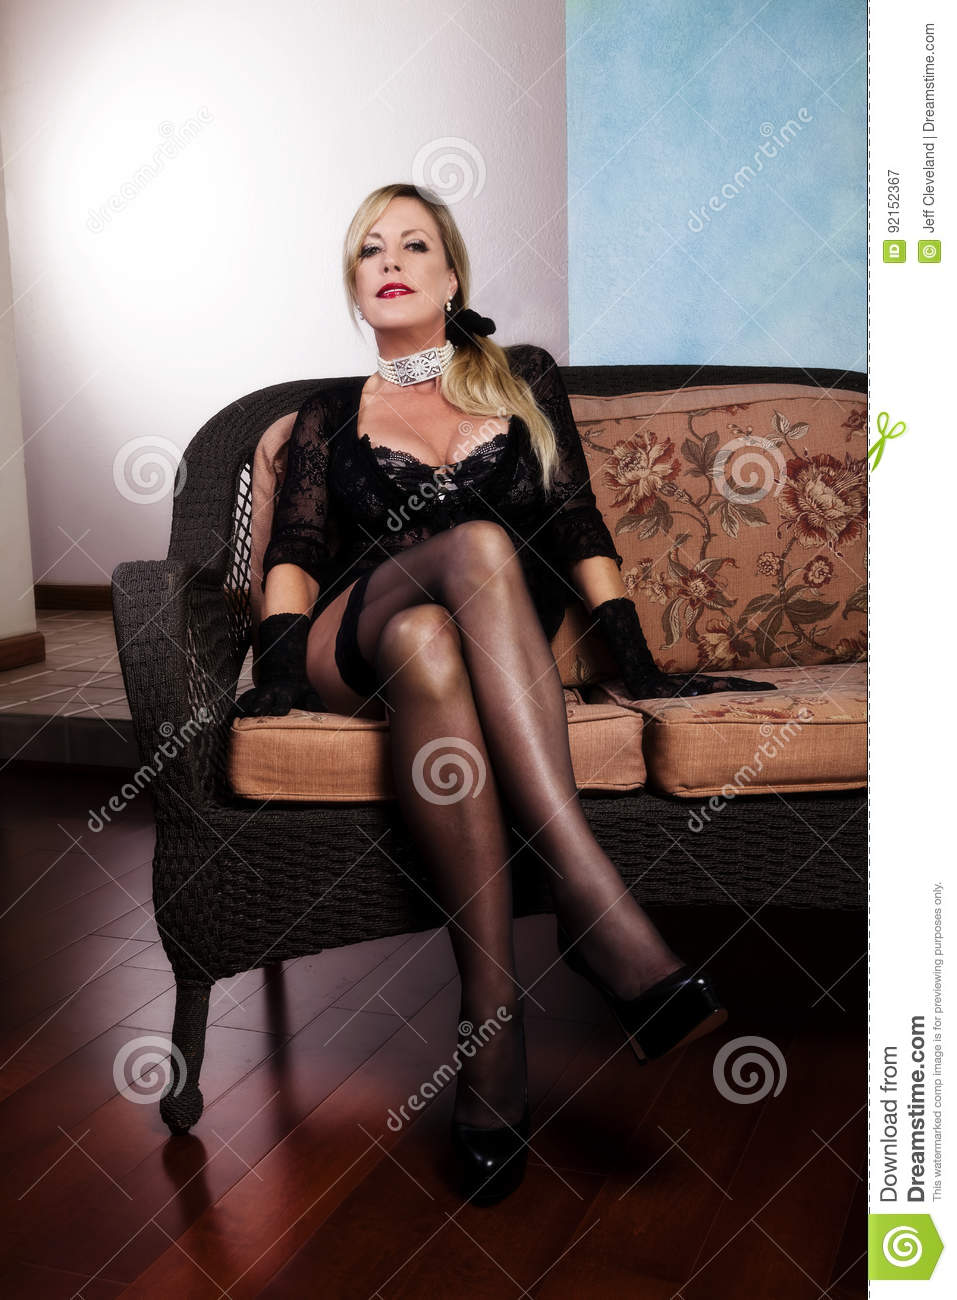 older woman sitting in black lingerie and stockings stock image